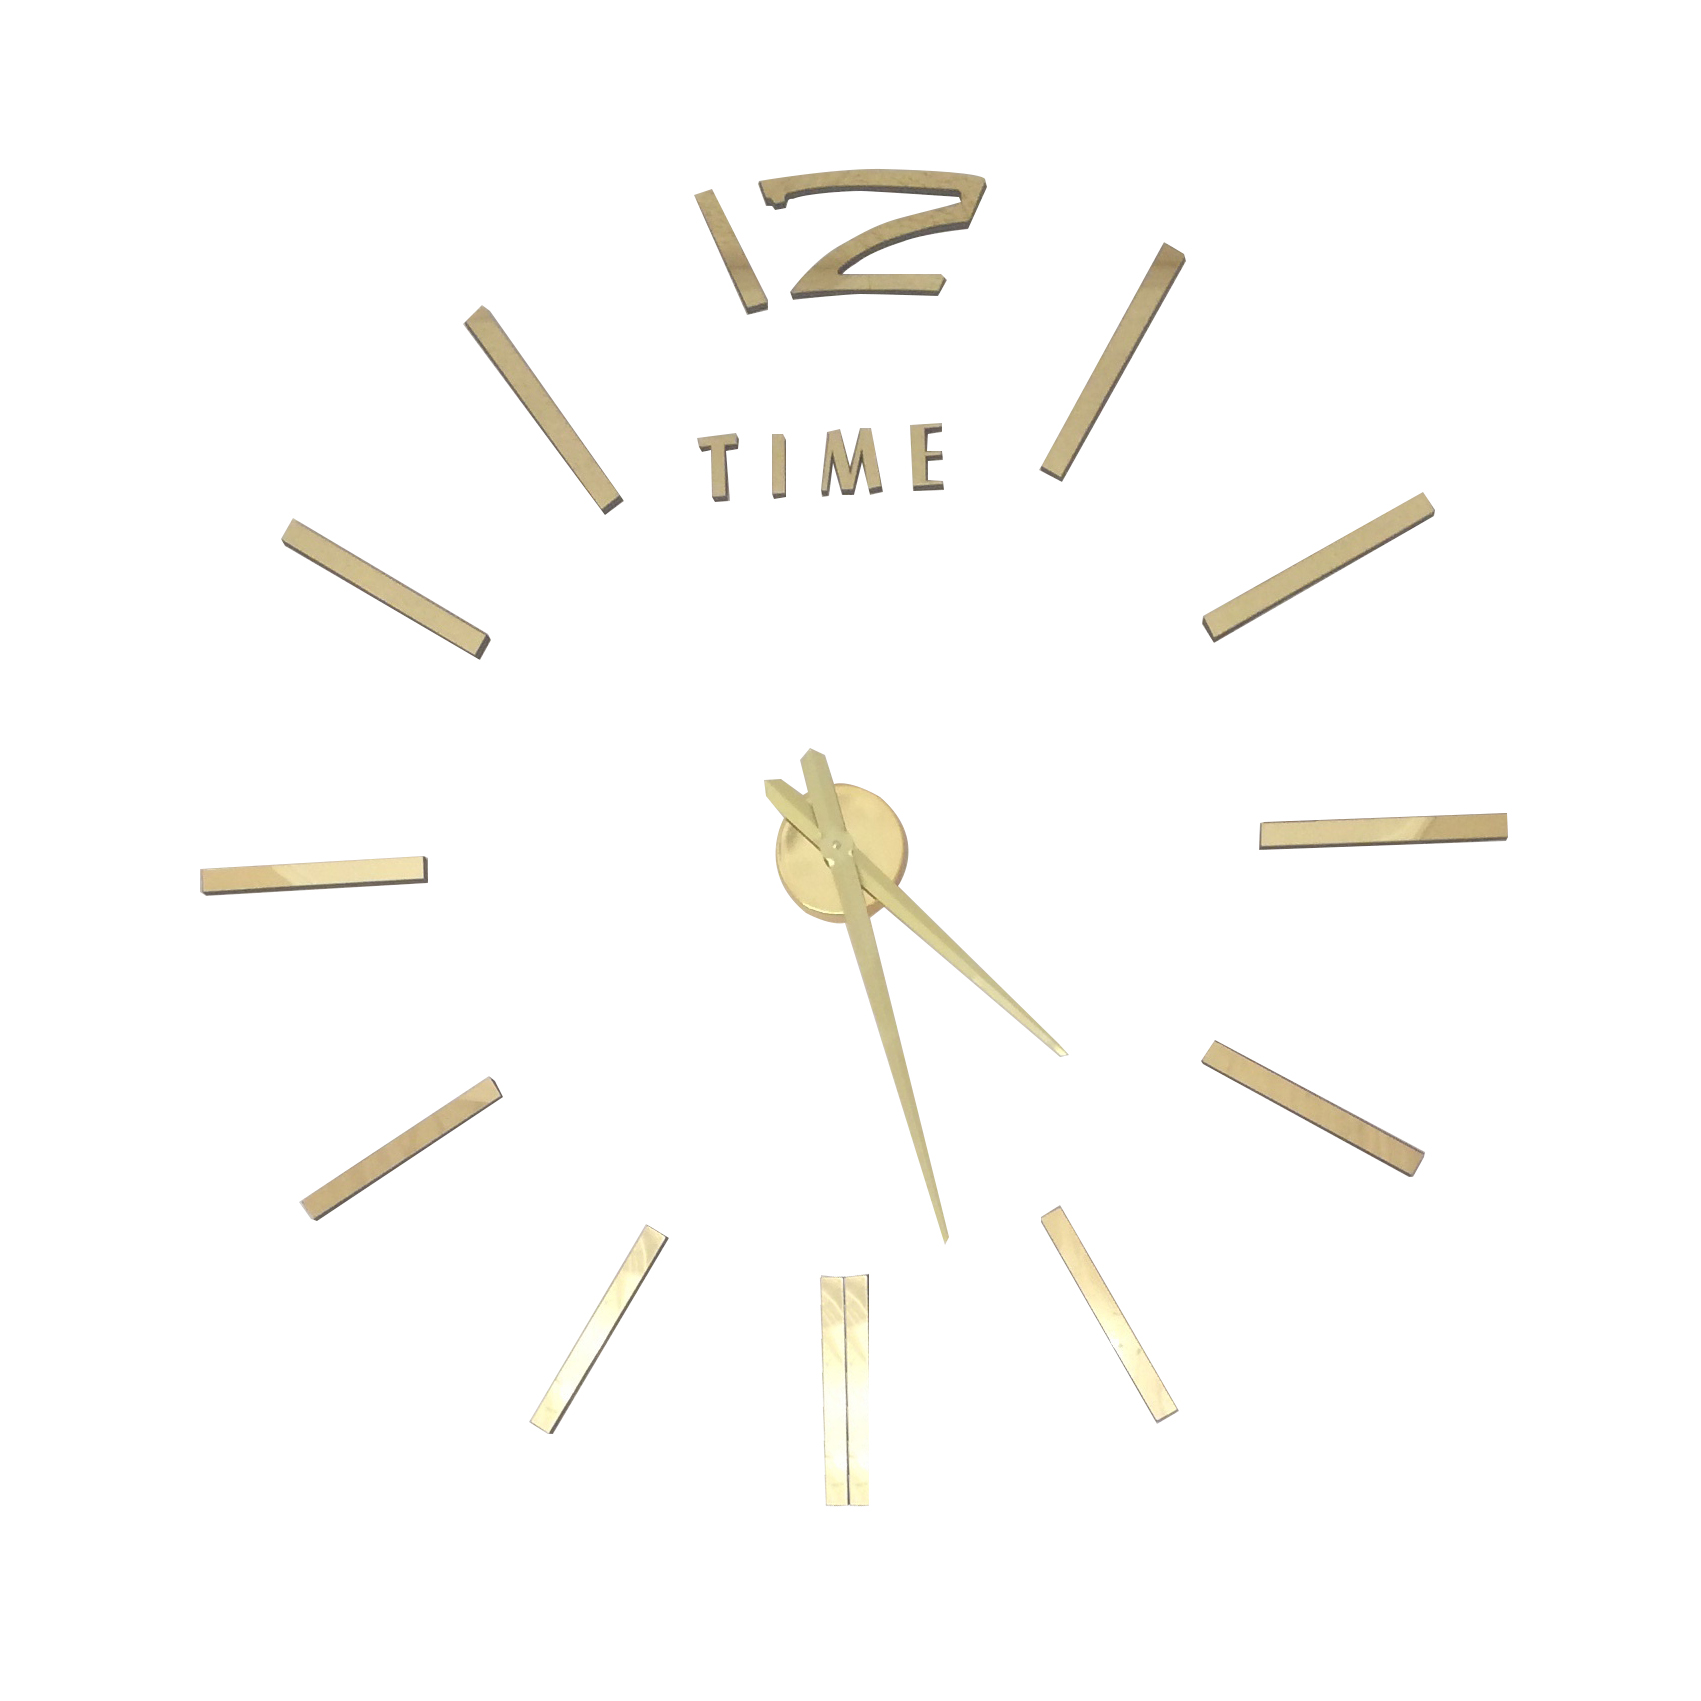 Diy 3d wall clock szs hot luxury large diy 3d wall clock home decor bell cool amipublicfo Choice Image